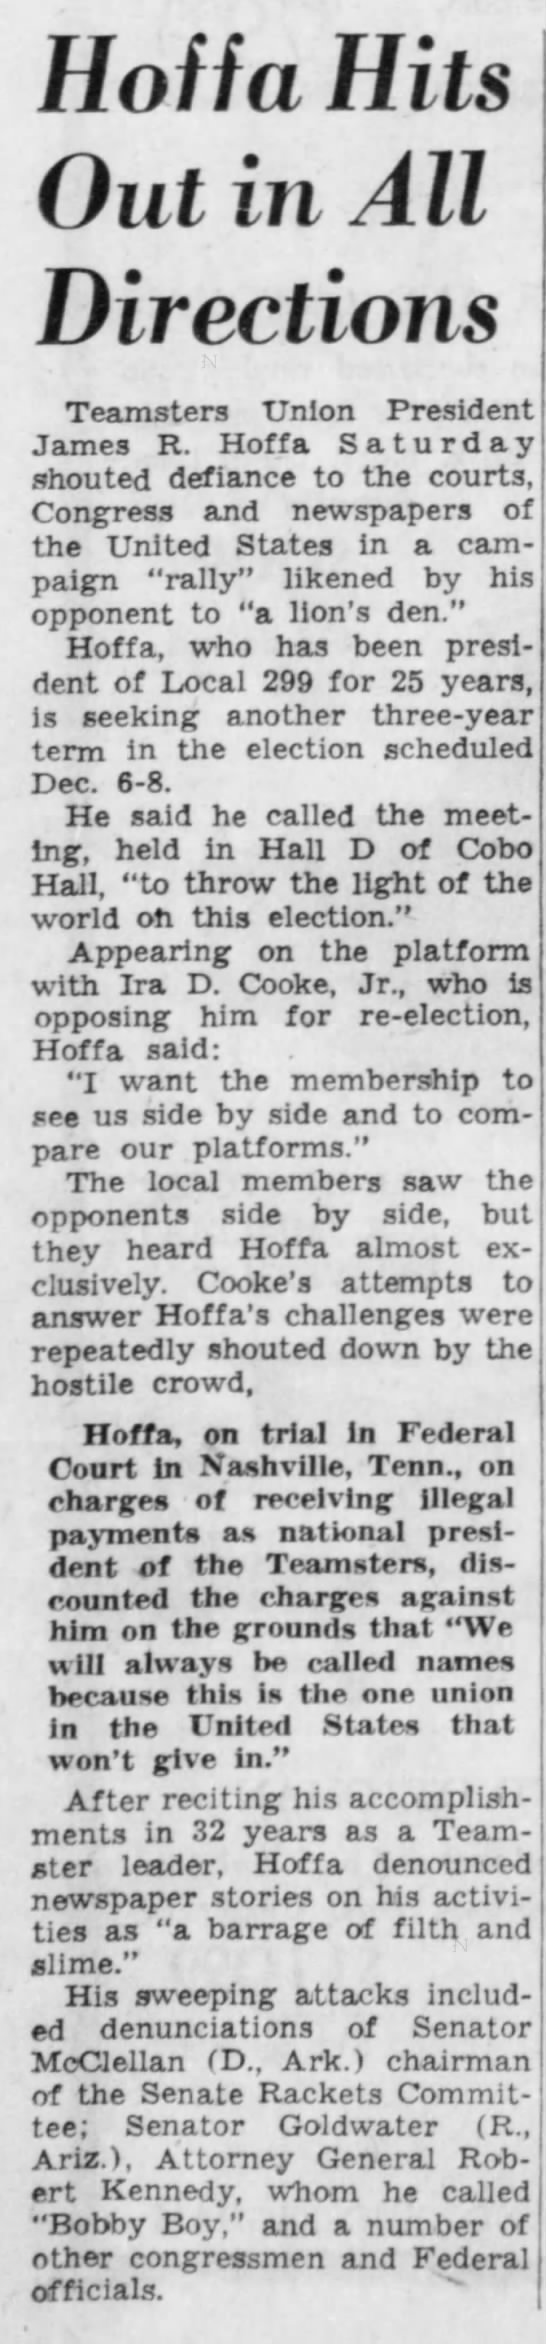 Hoffa Hits Out in All Directions -